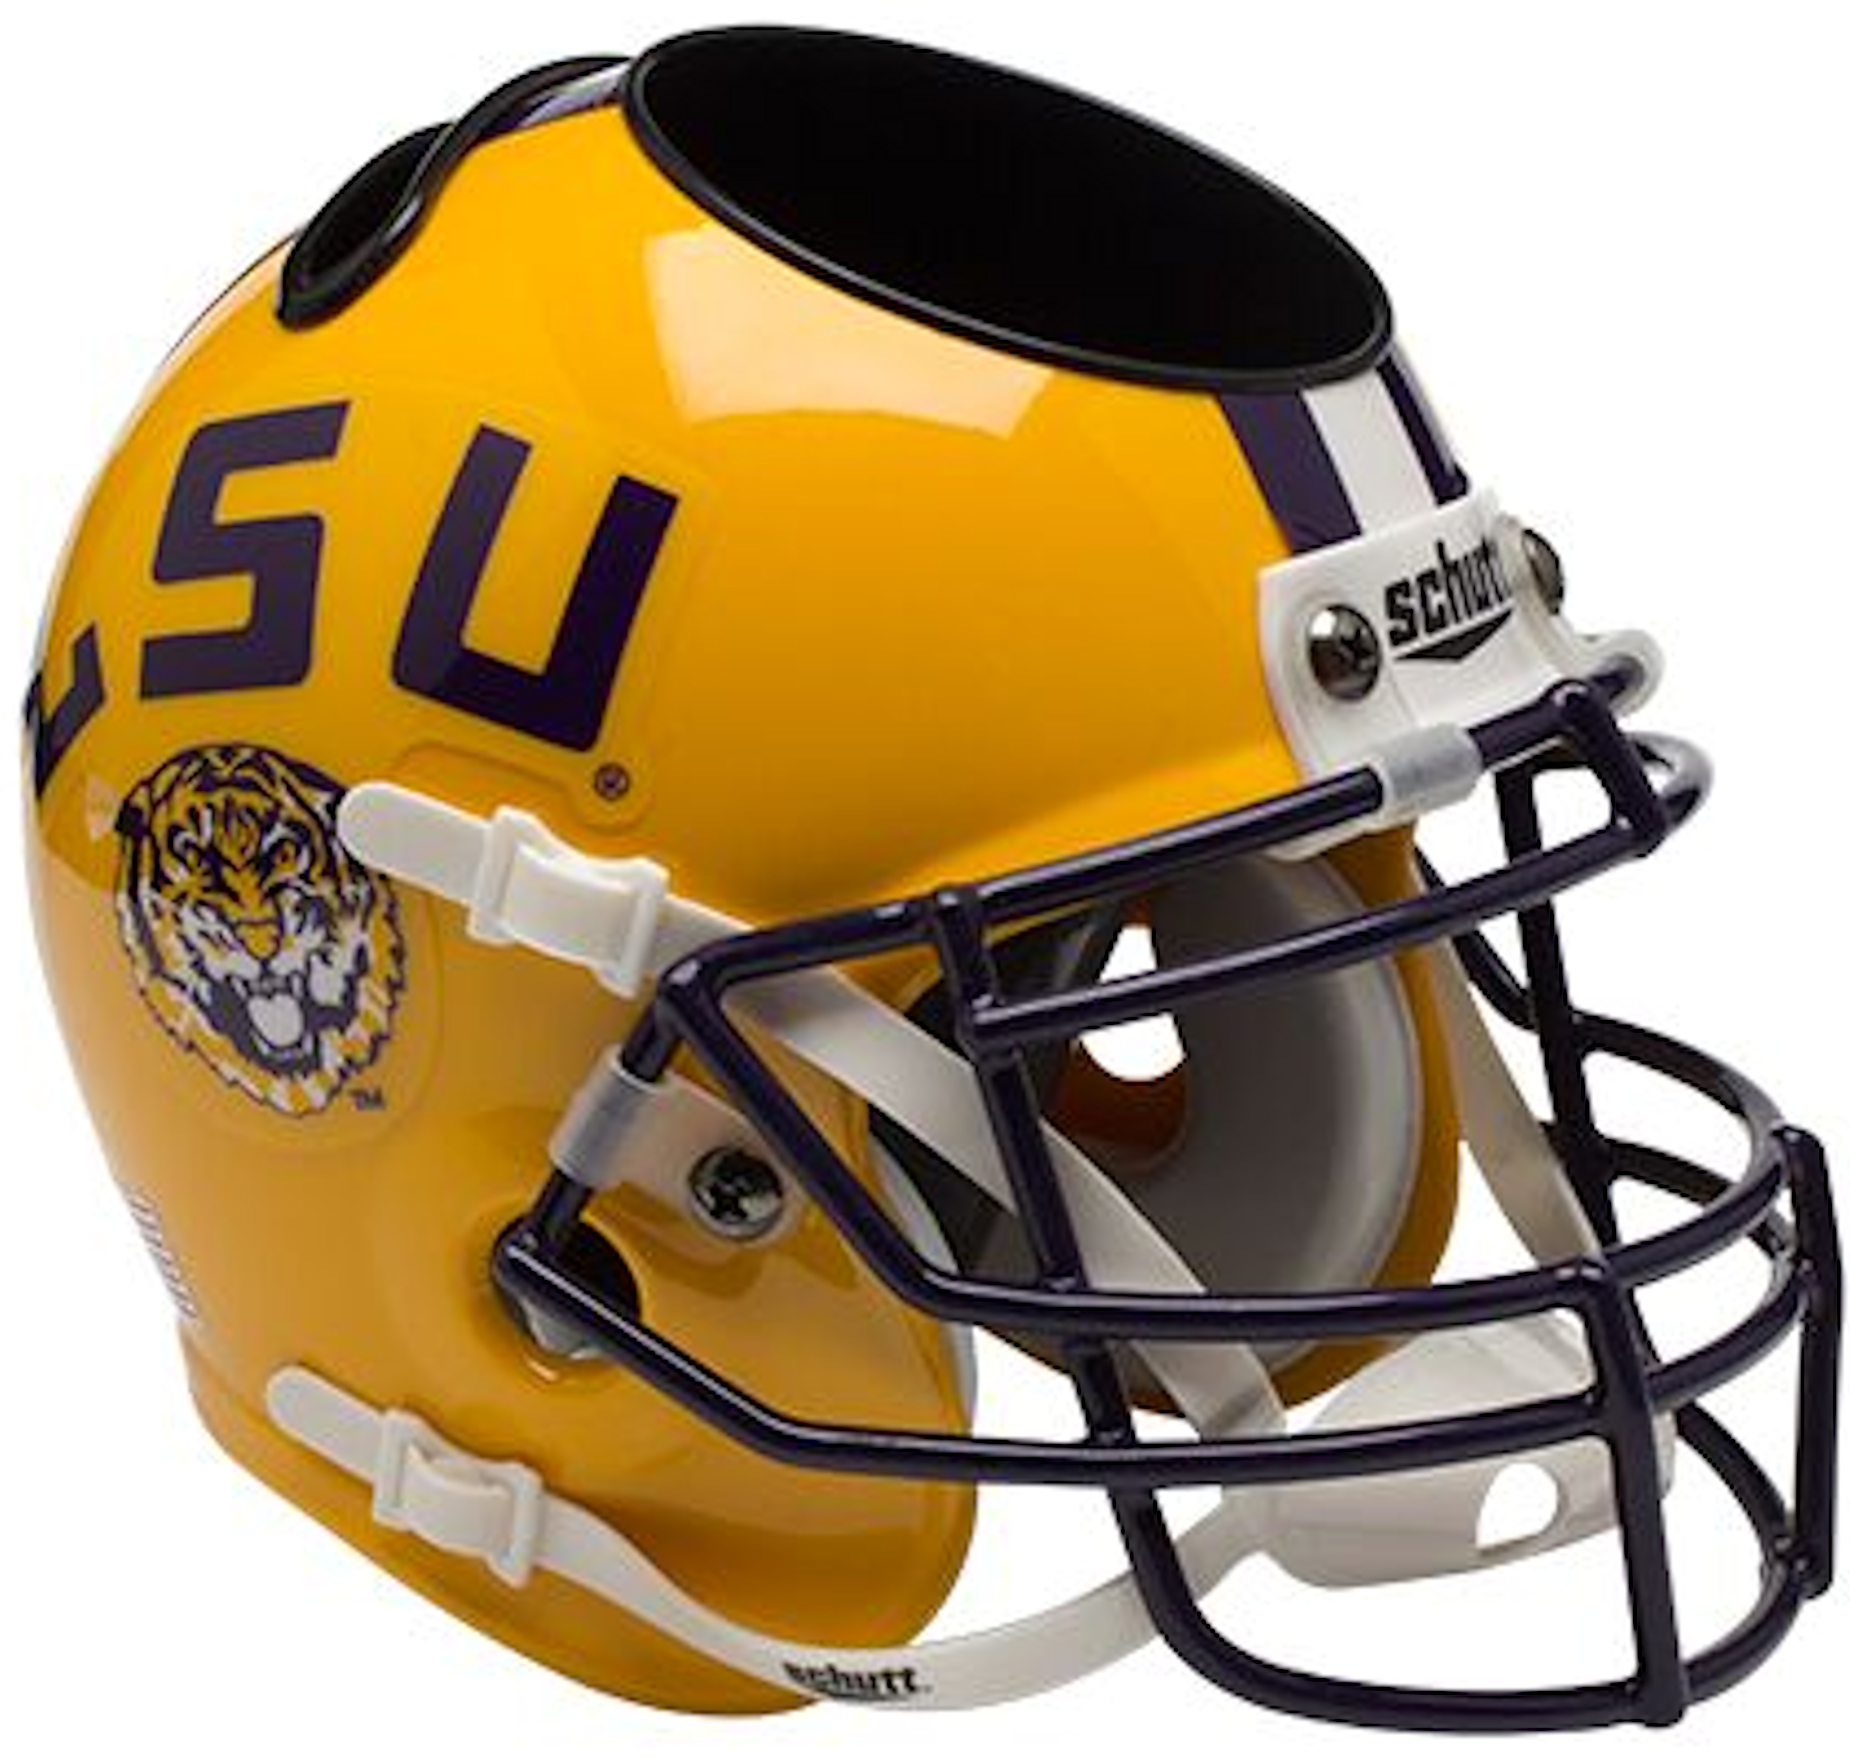 LSU Tigers Miniature Football Helmet Desk Caddy